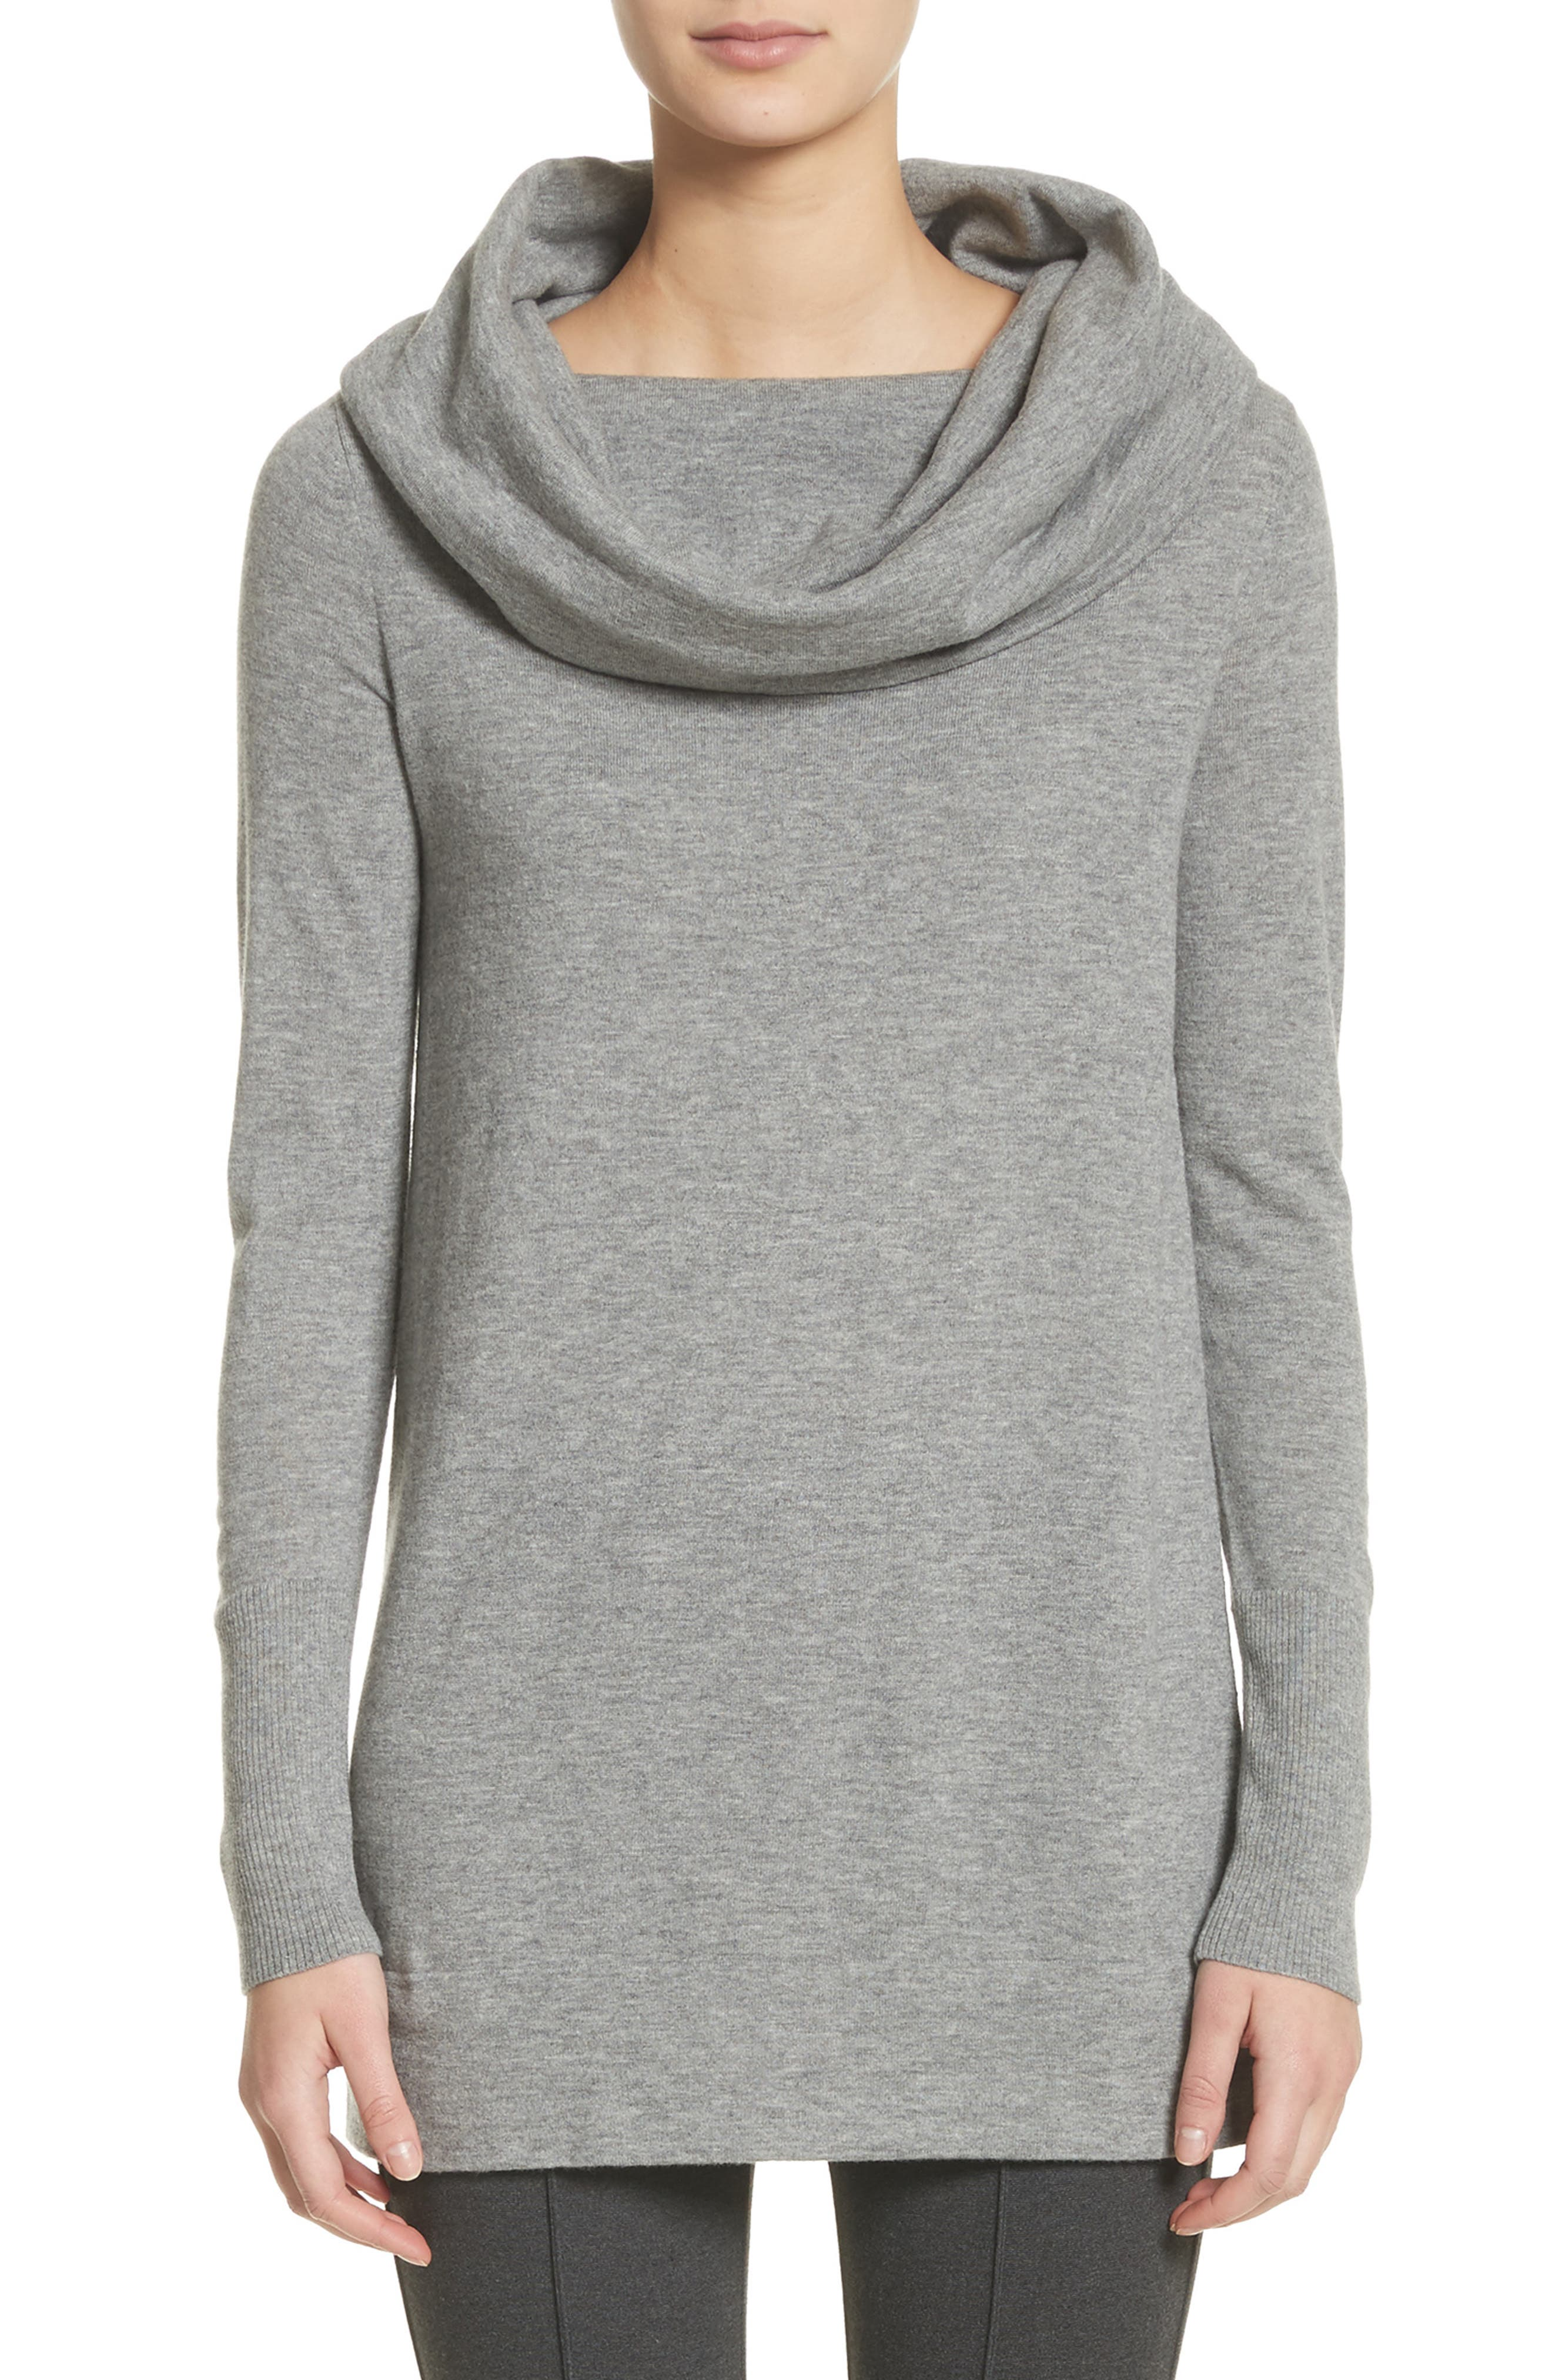 Alternate Image 1 Selected - Lafayette 148 New York Convertible Off the Shoulder Sweater